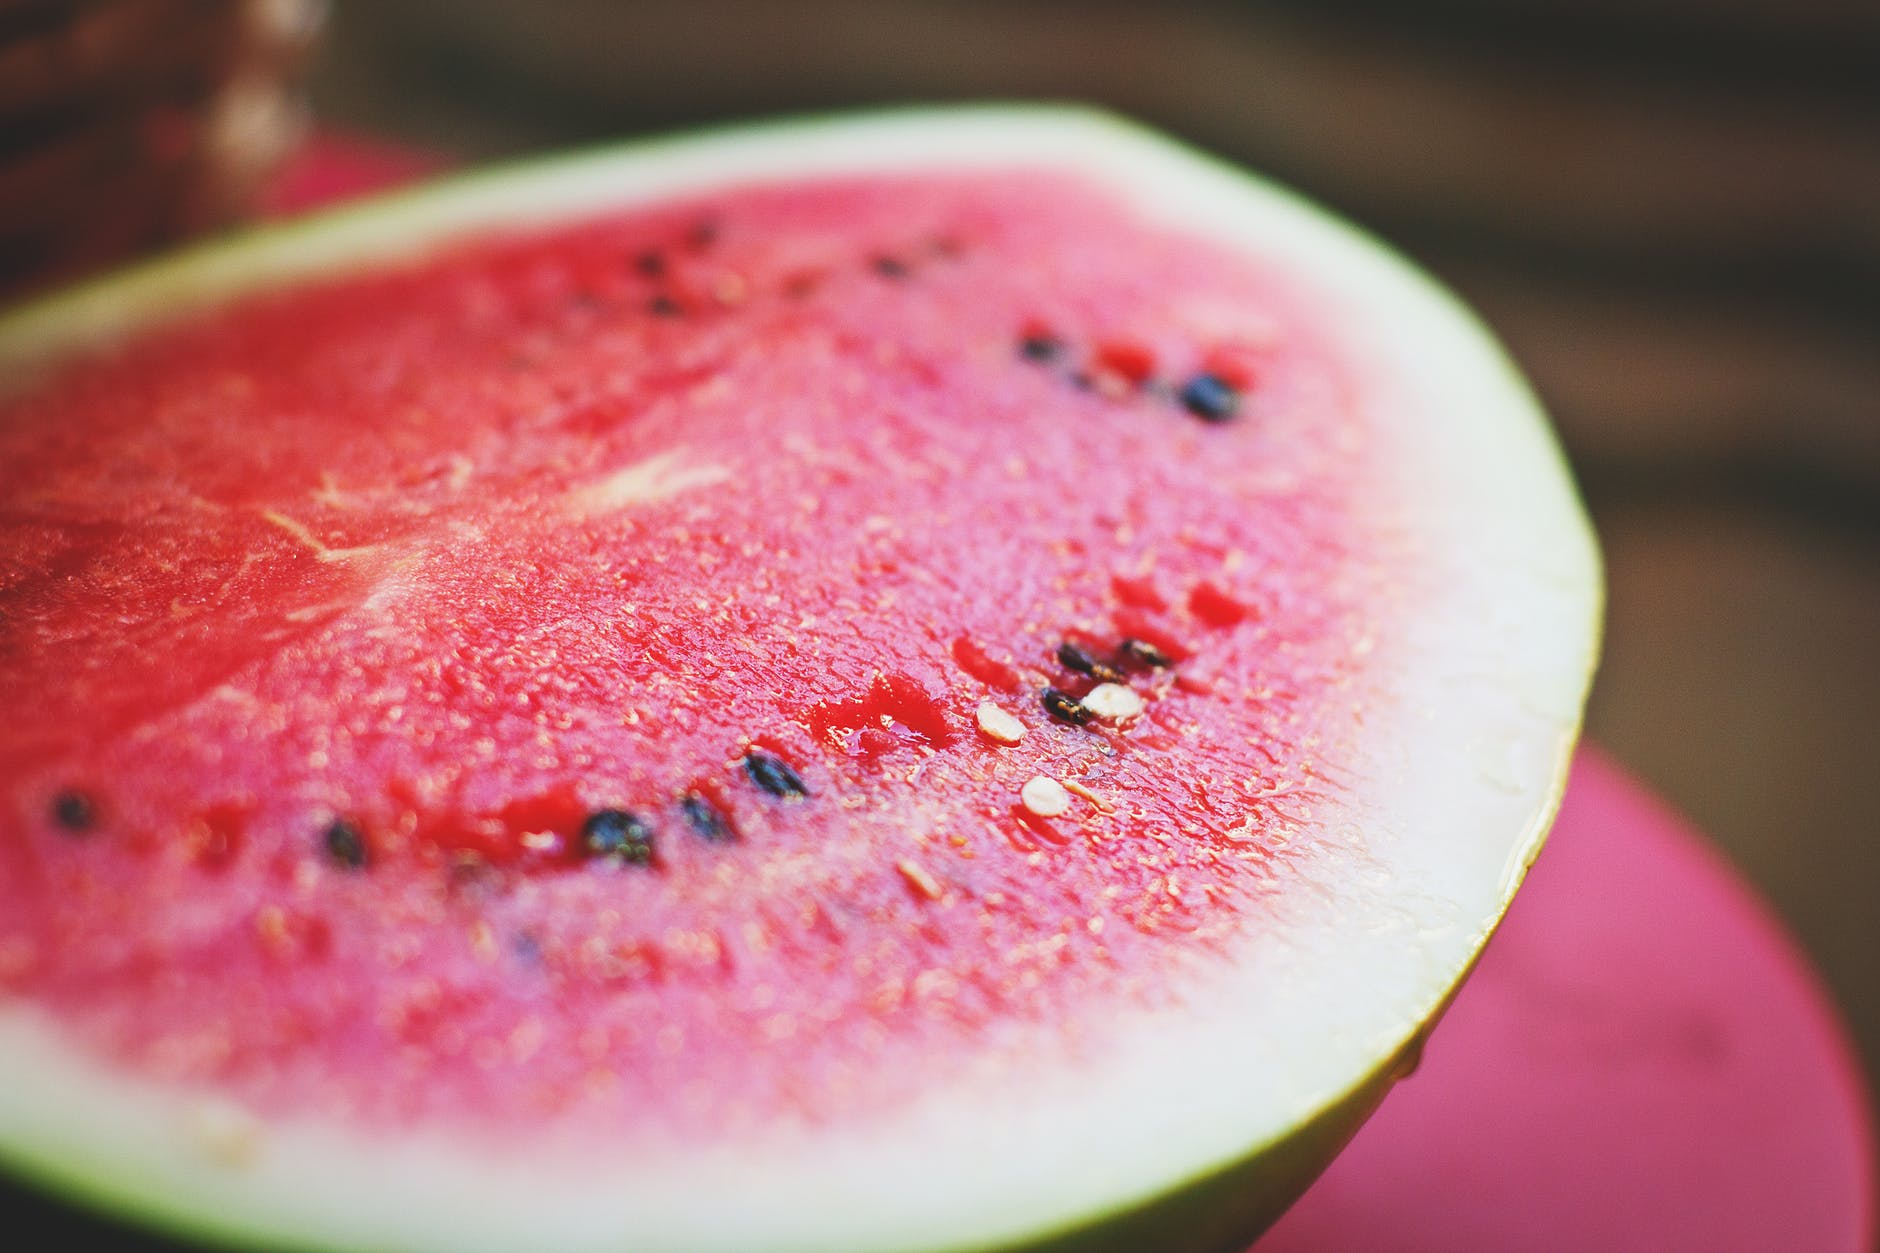 10 Health Benefits Of Watermelon For Your Body